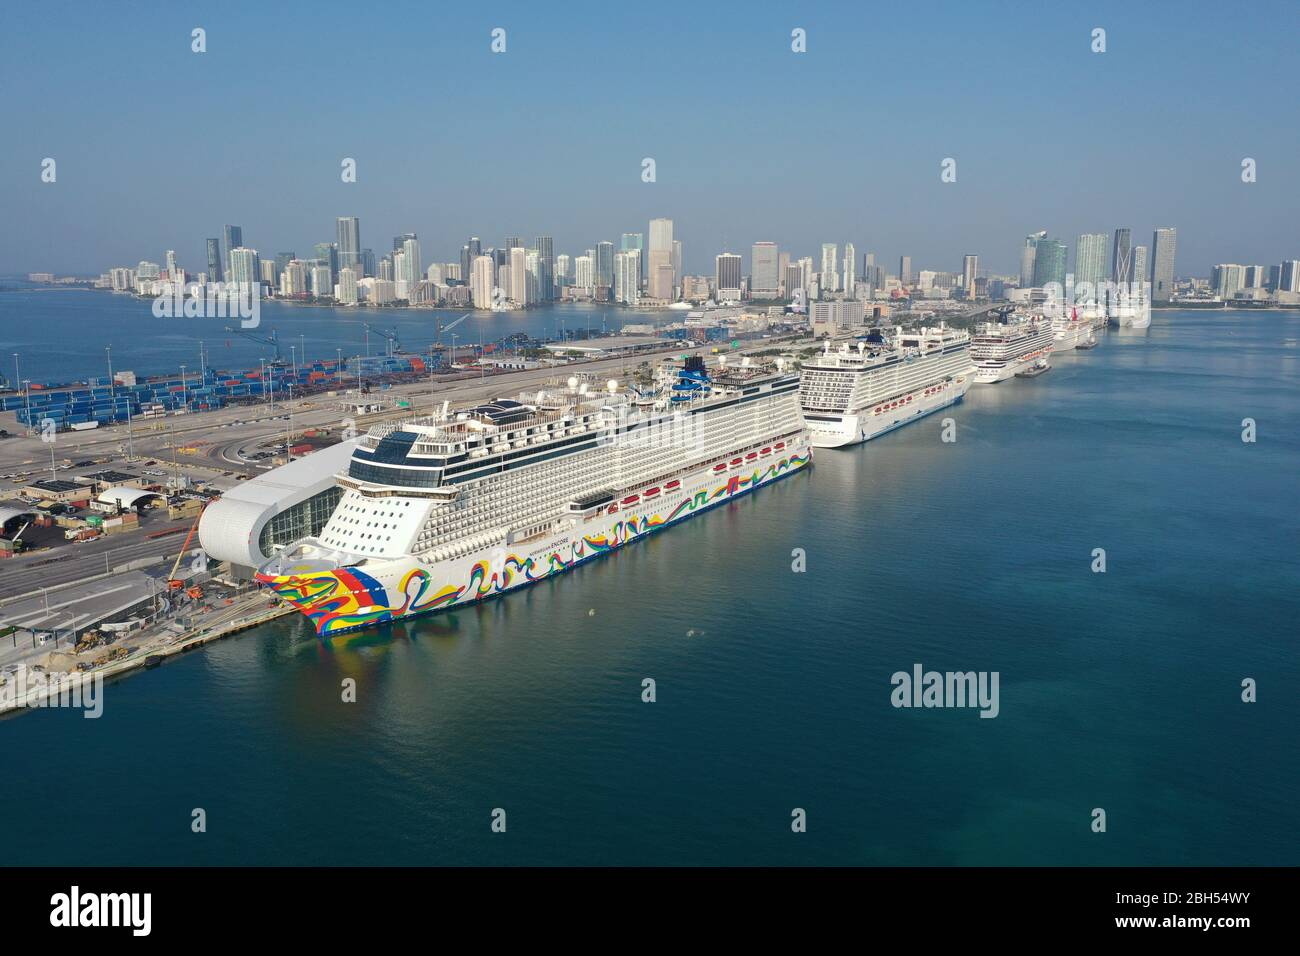 Cruise Industry High Resolution Stock Photography And Images Alamy